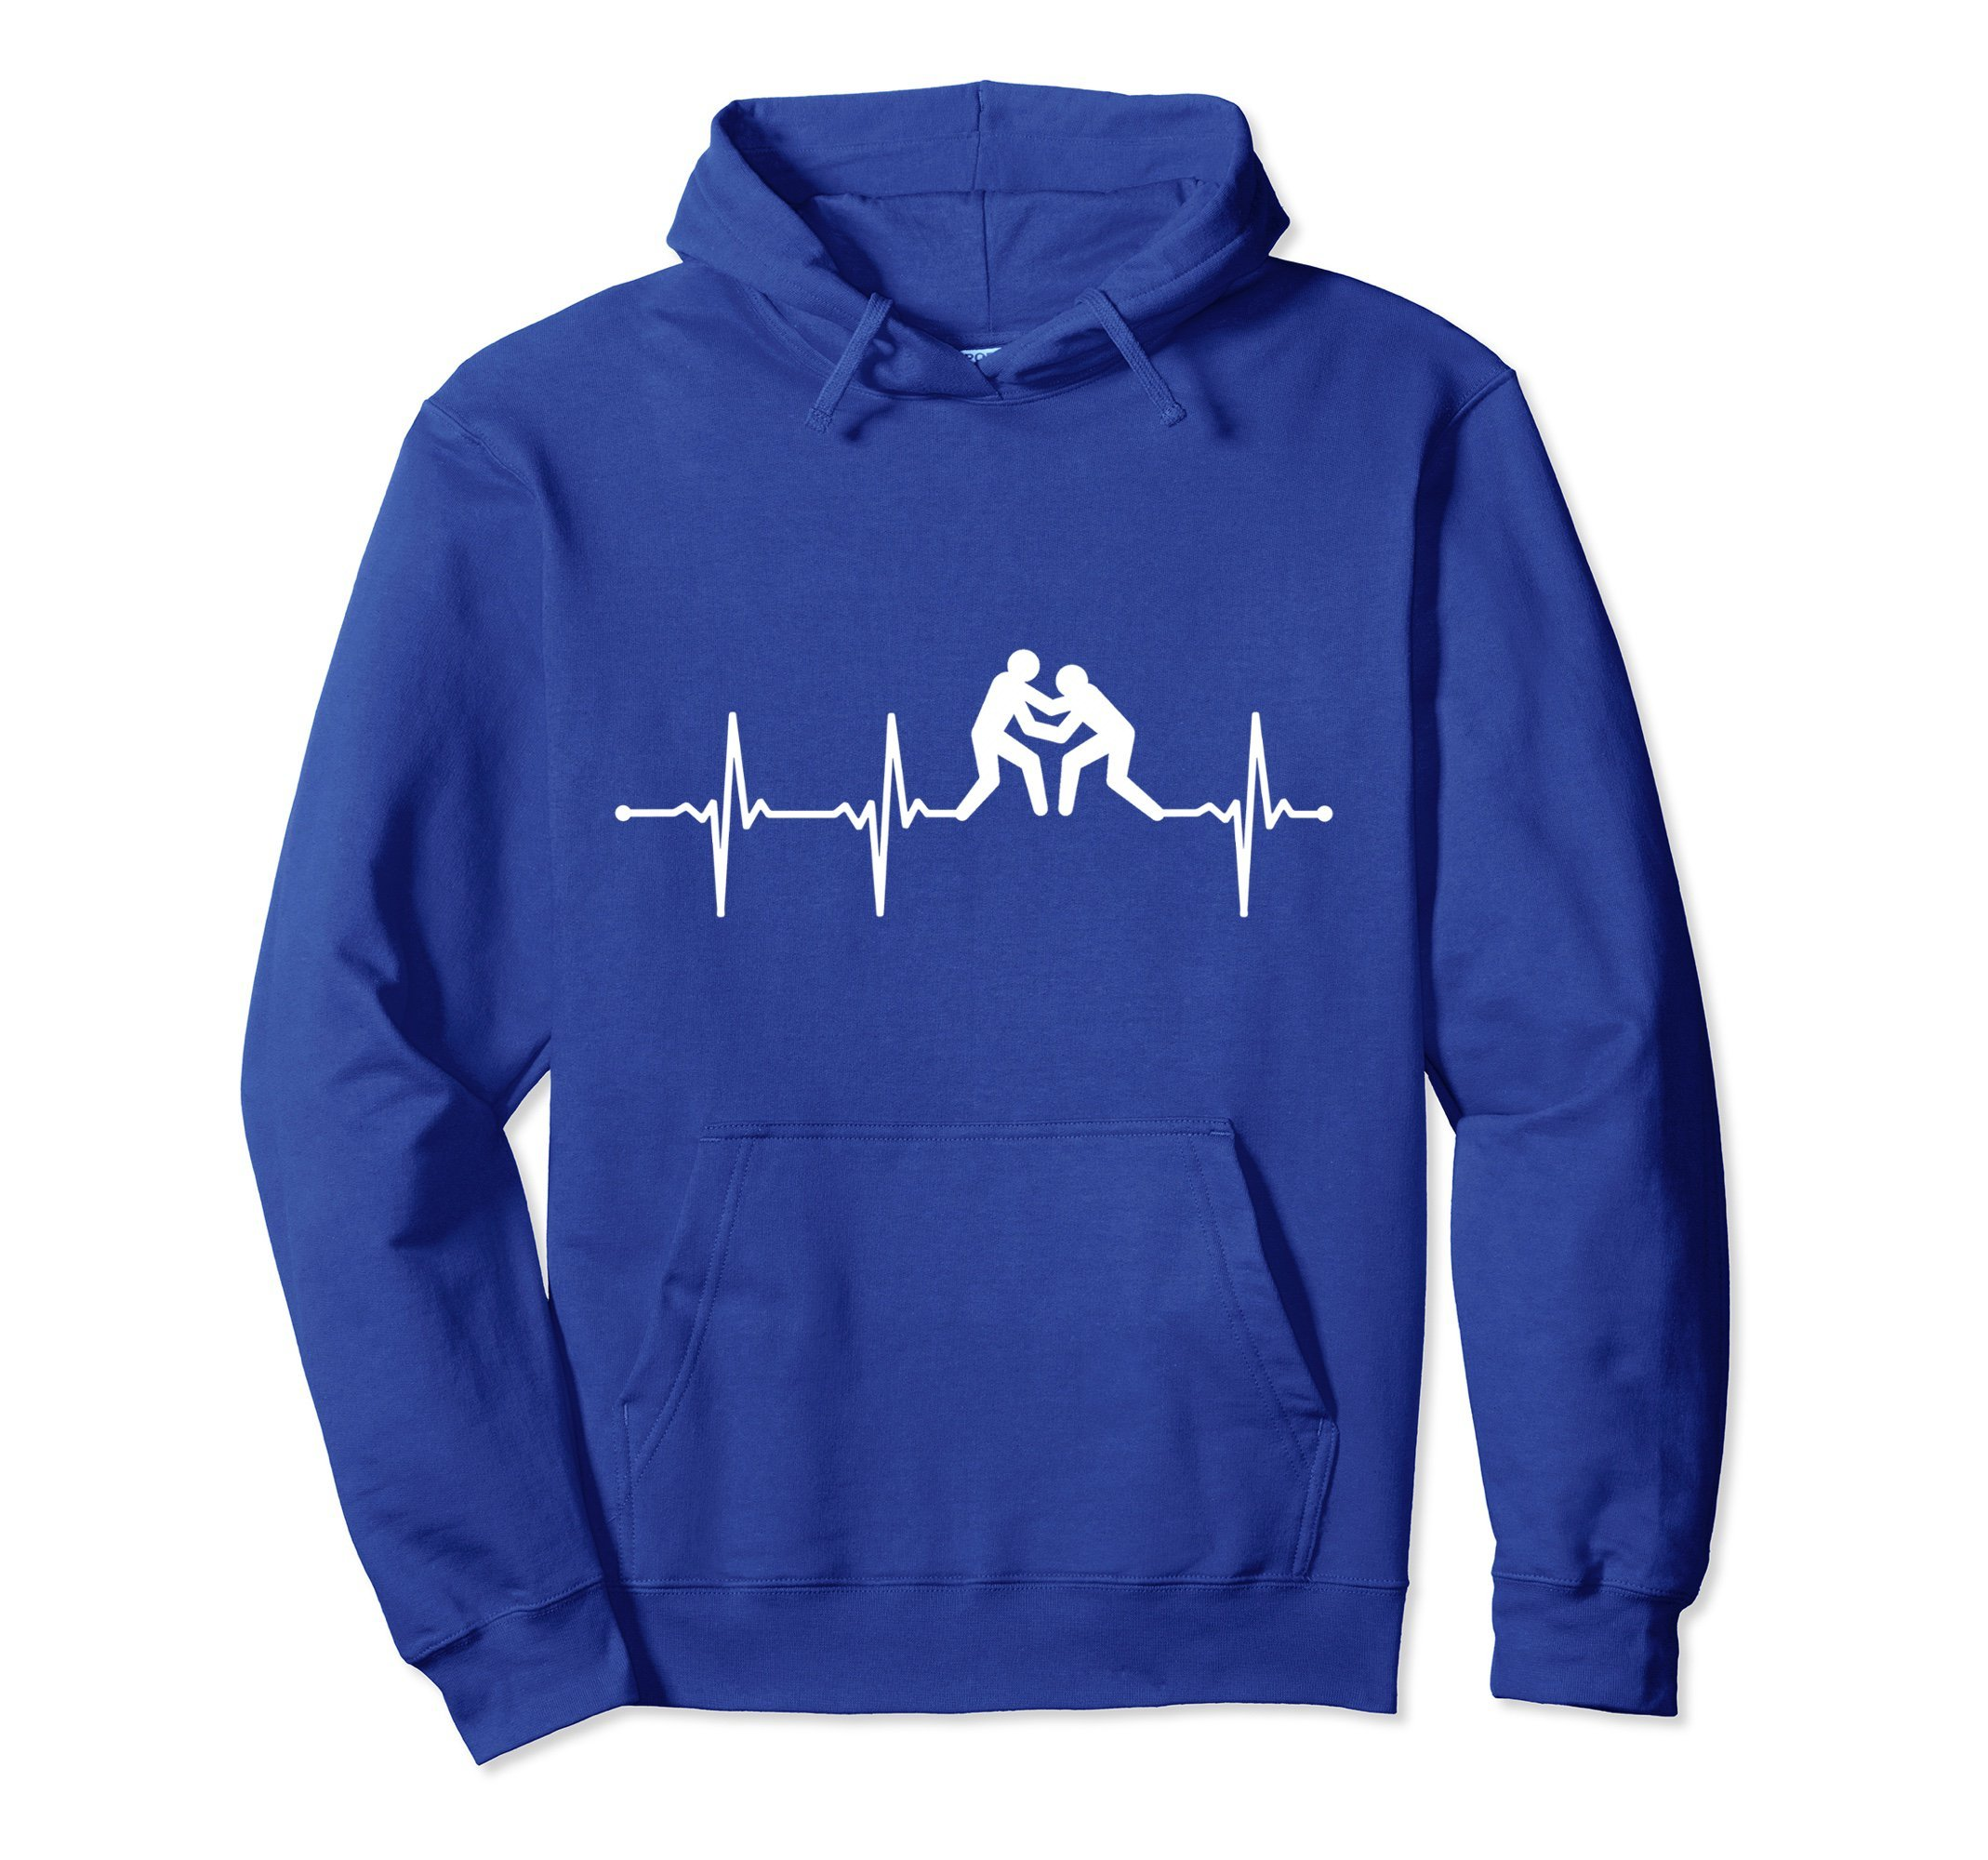 Unisex Wrestling Heartbeat Hoodie Small Royal Blue